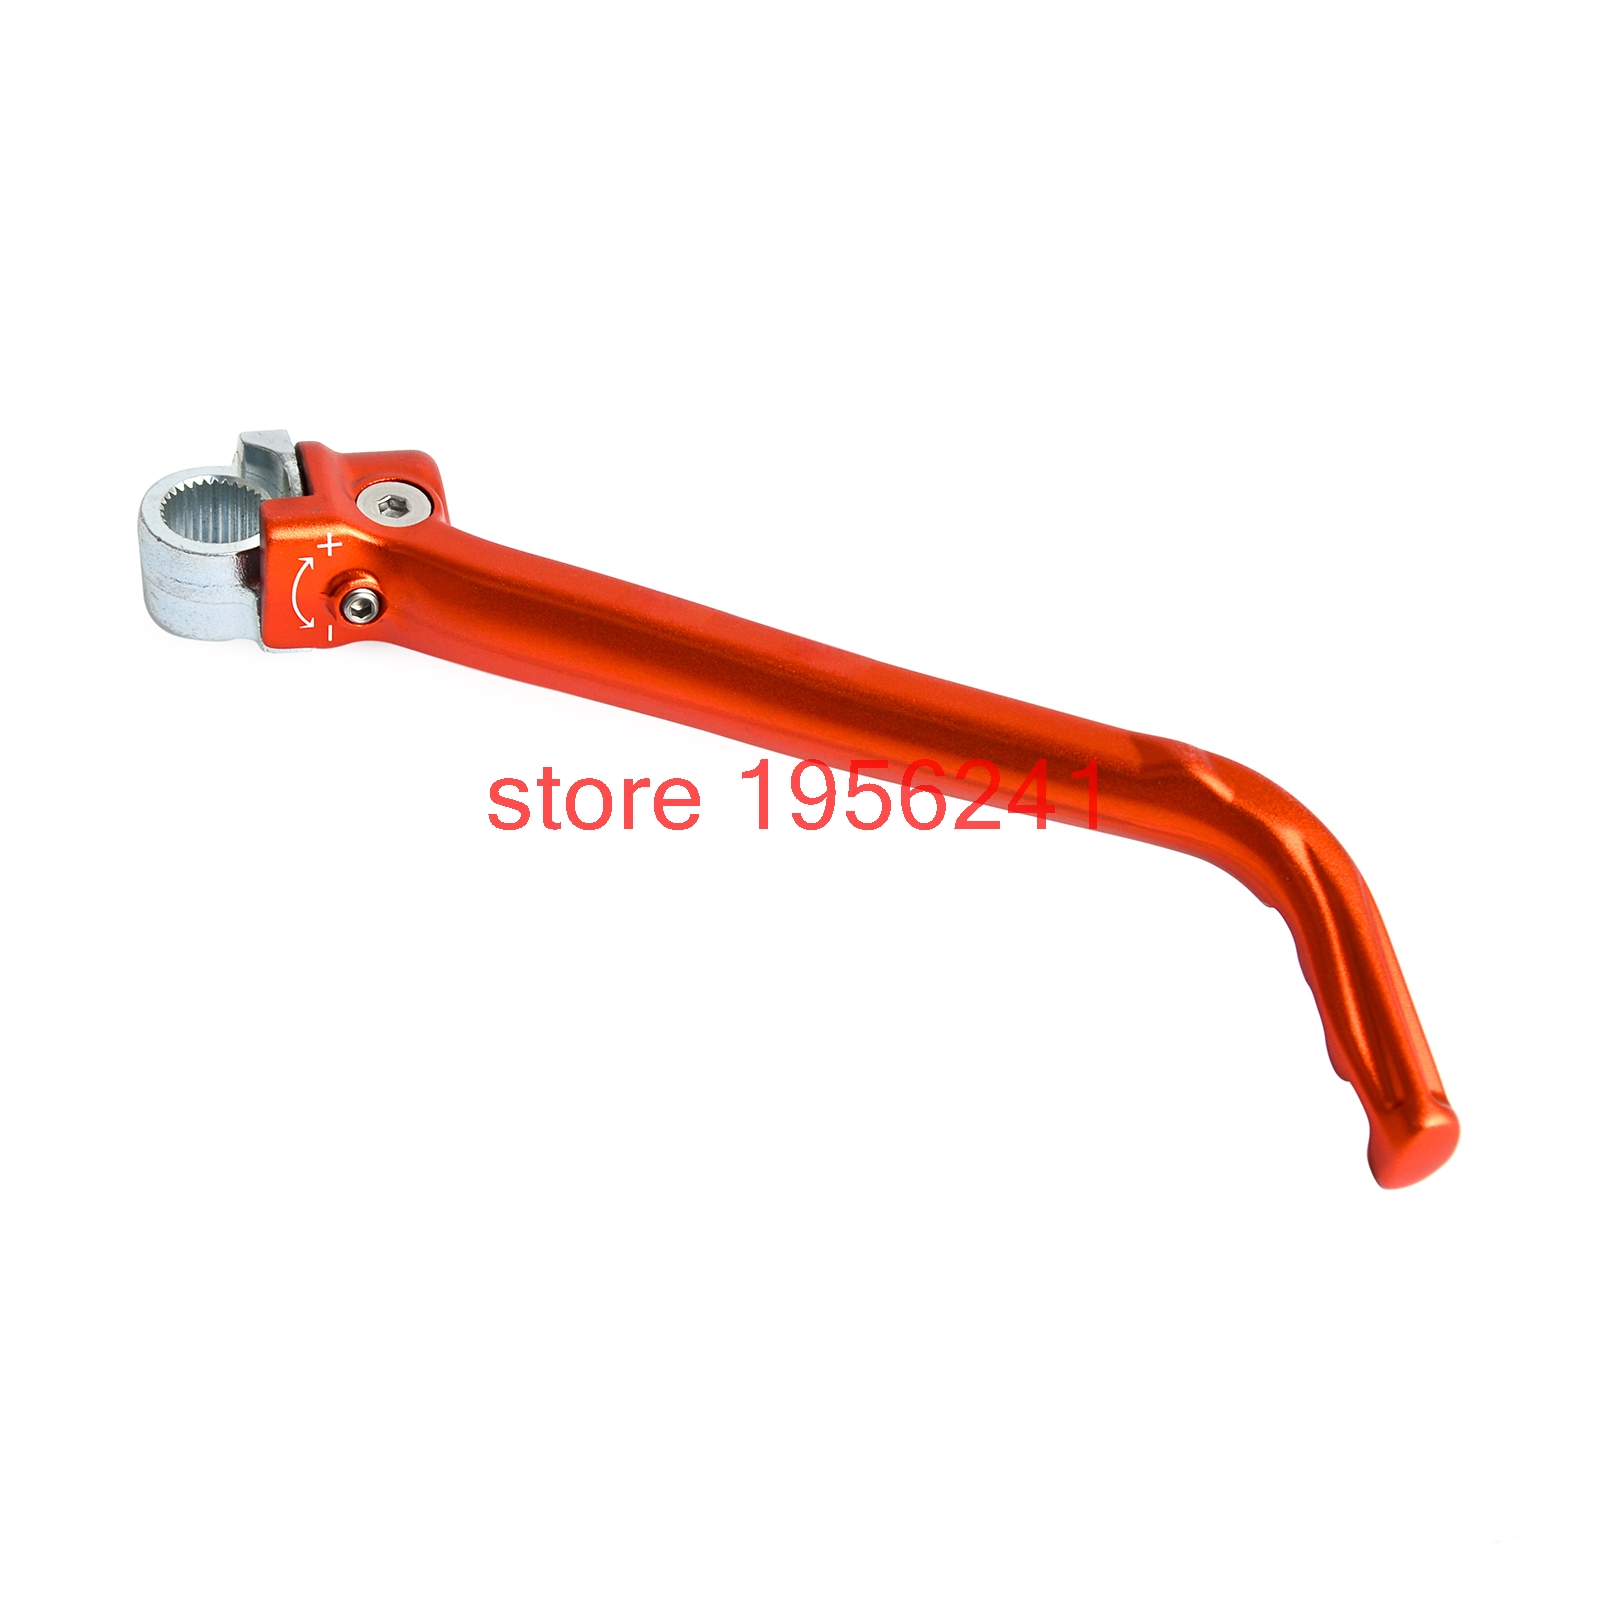 Motorcycle Kick Start Lever For KTM 125 250 SX 300 EXC 2016 2017 250 300 EXC SIX DAYS 2017 125 150 250 300 XCW XC-W 2017 цены